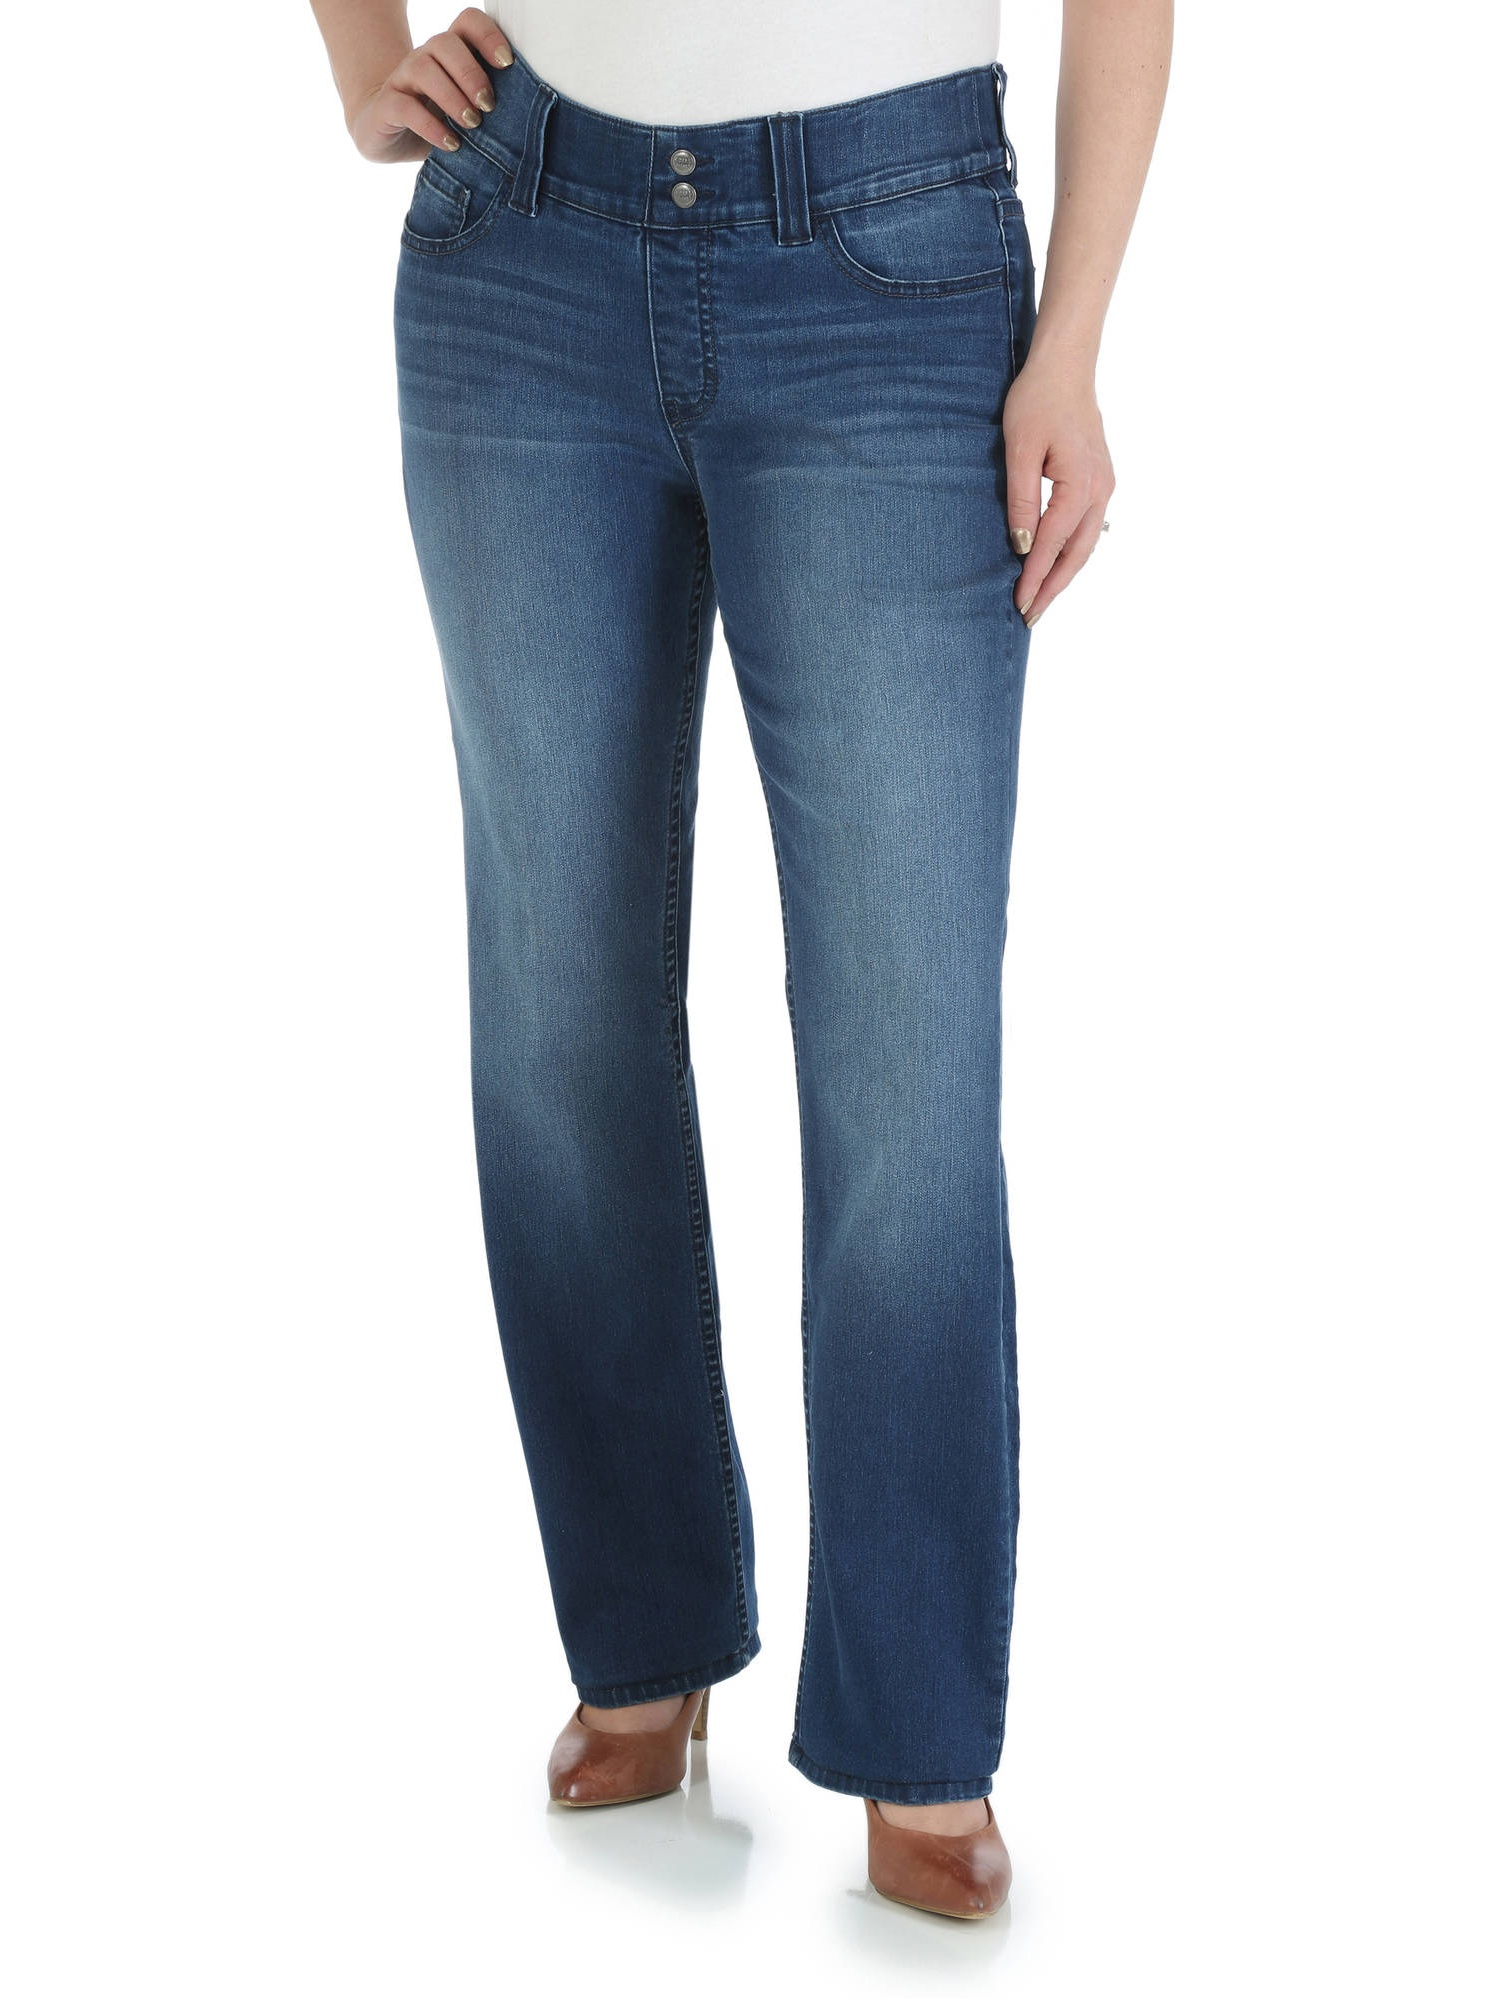 Women's Waist Smoother Straight Leg Jean